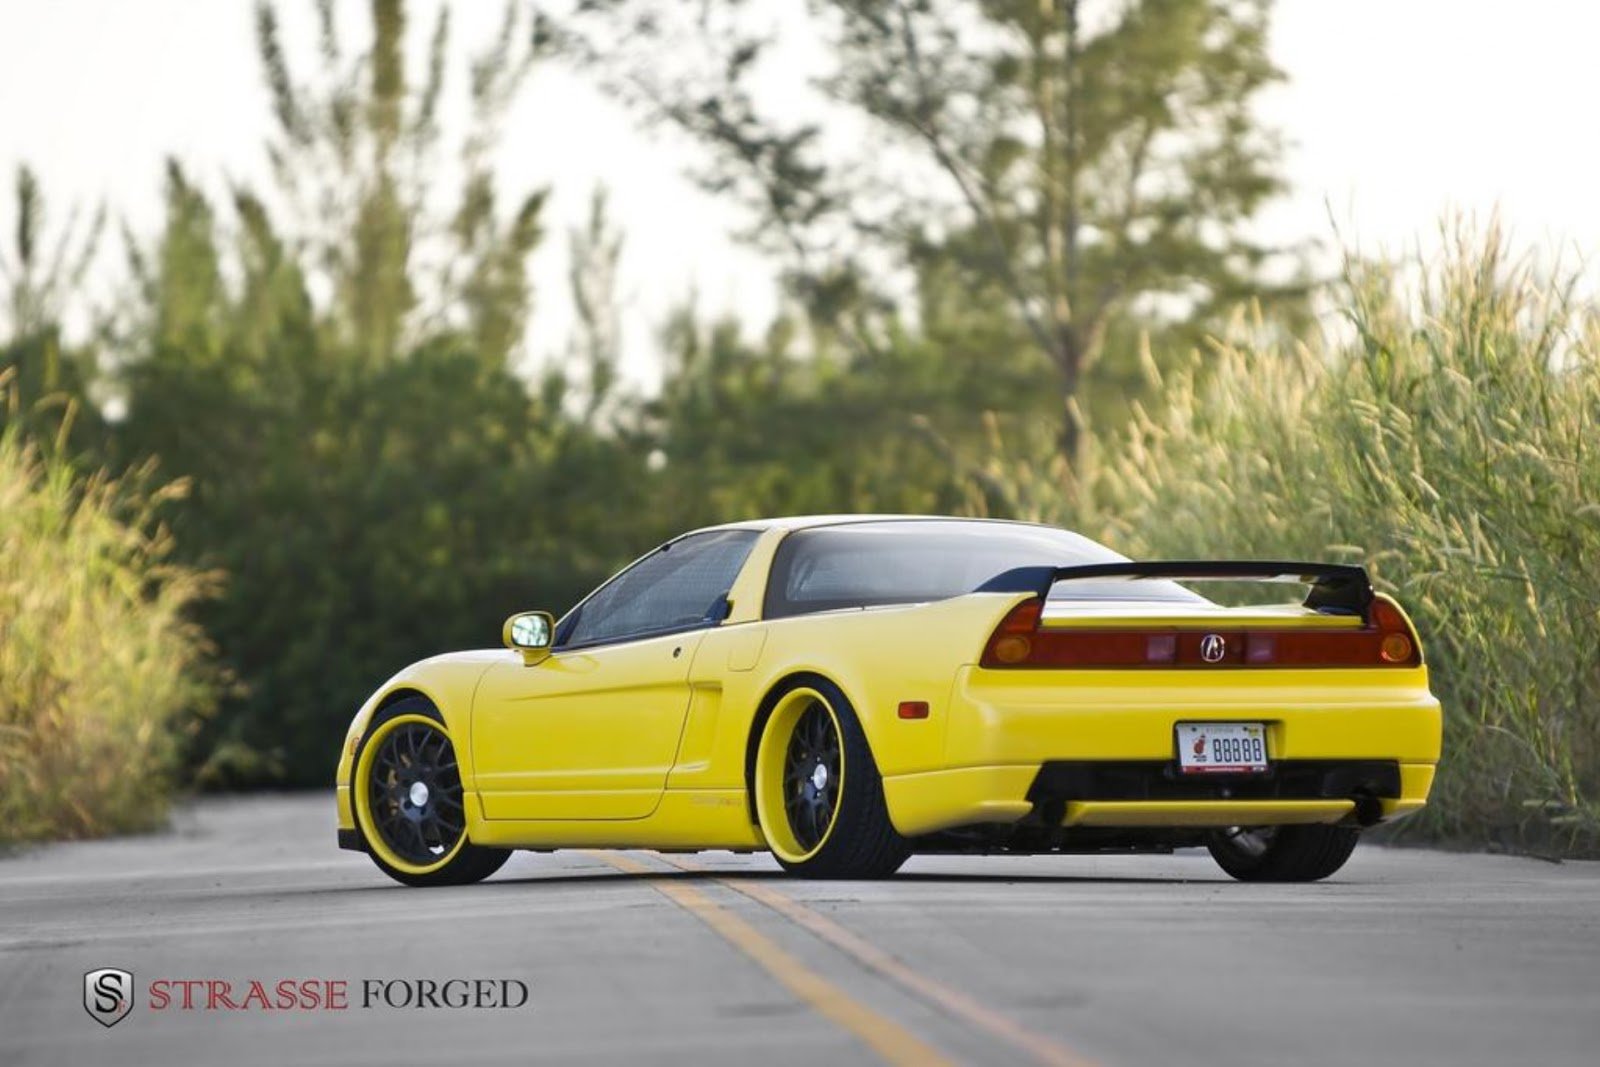 All Cars NZ: 2004 Acura NSX by Strasse Forged